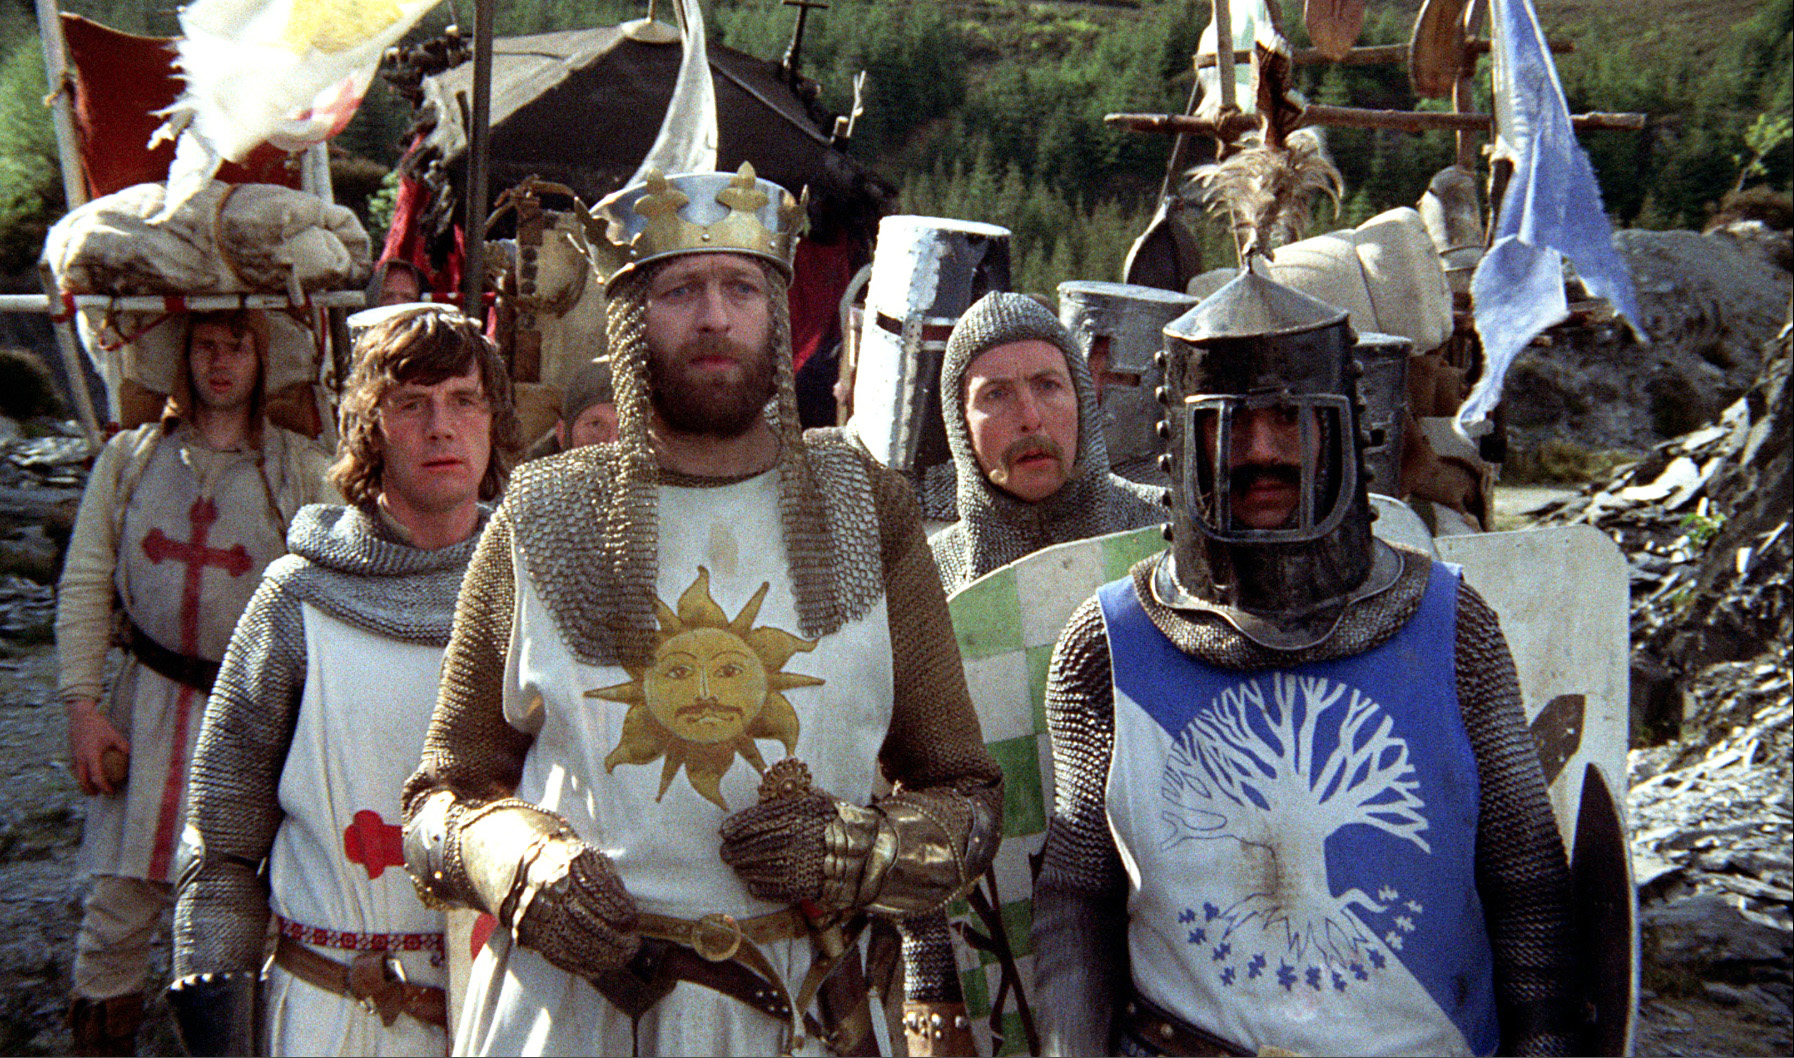 Knights of the round table monty python - Knights Of The Round Table Monty Python 31